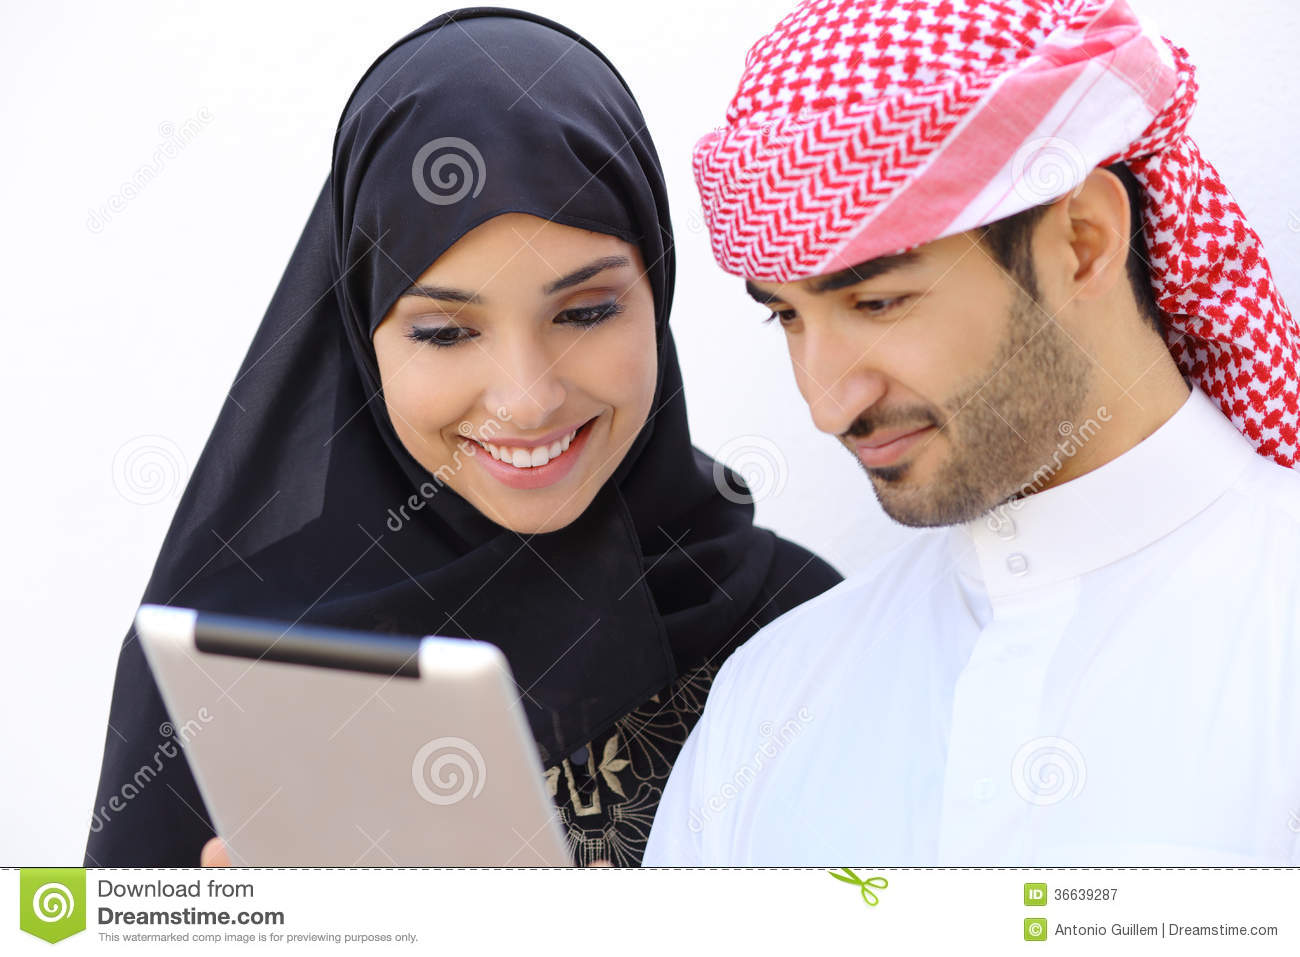 yates center muslim dating site Meet people interested in asian muslim dating on lovehabibi - the top destination for muslim online dating in asia and around the world.